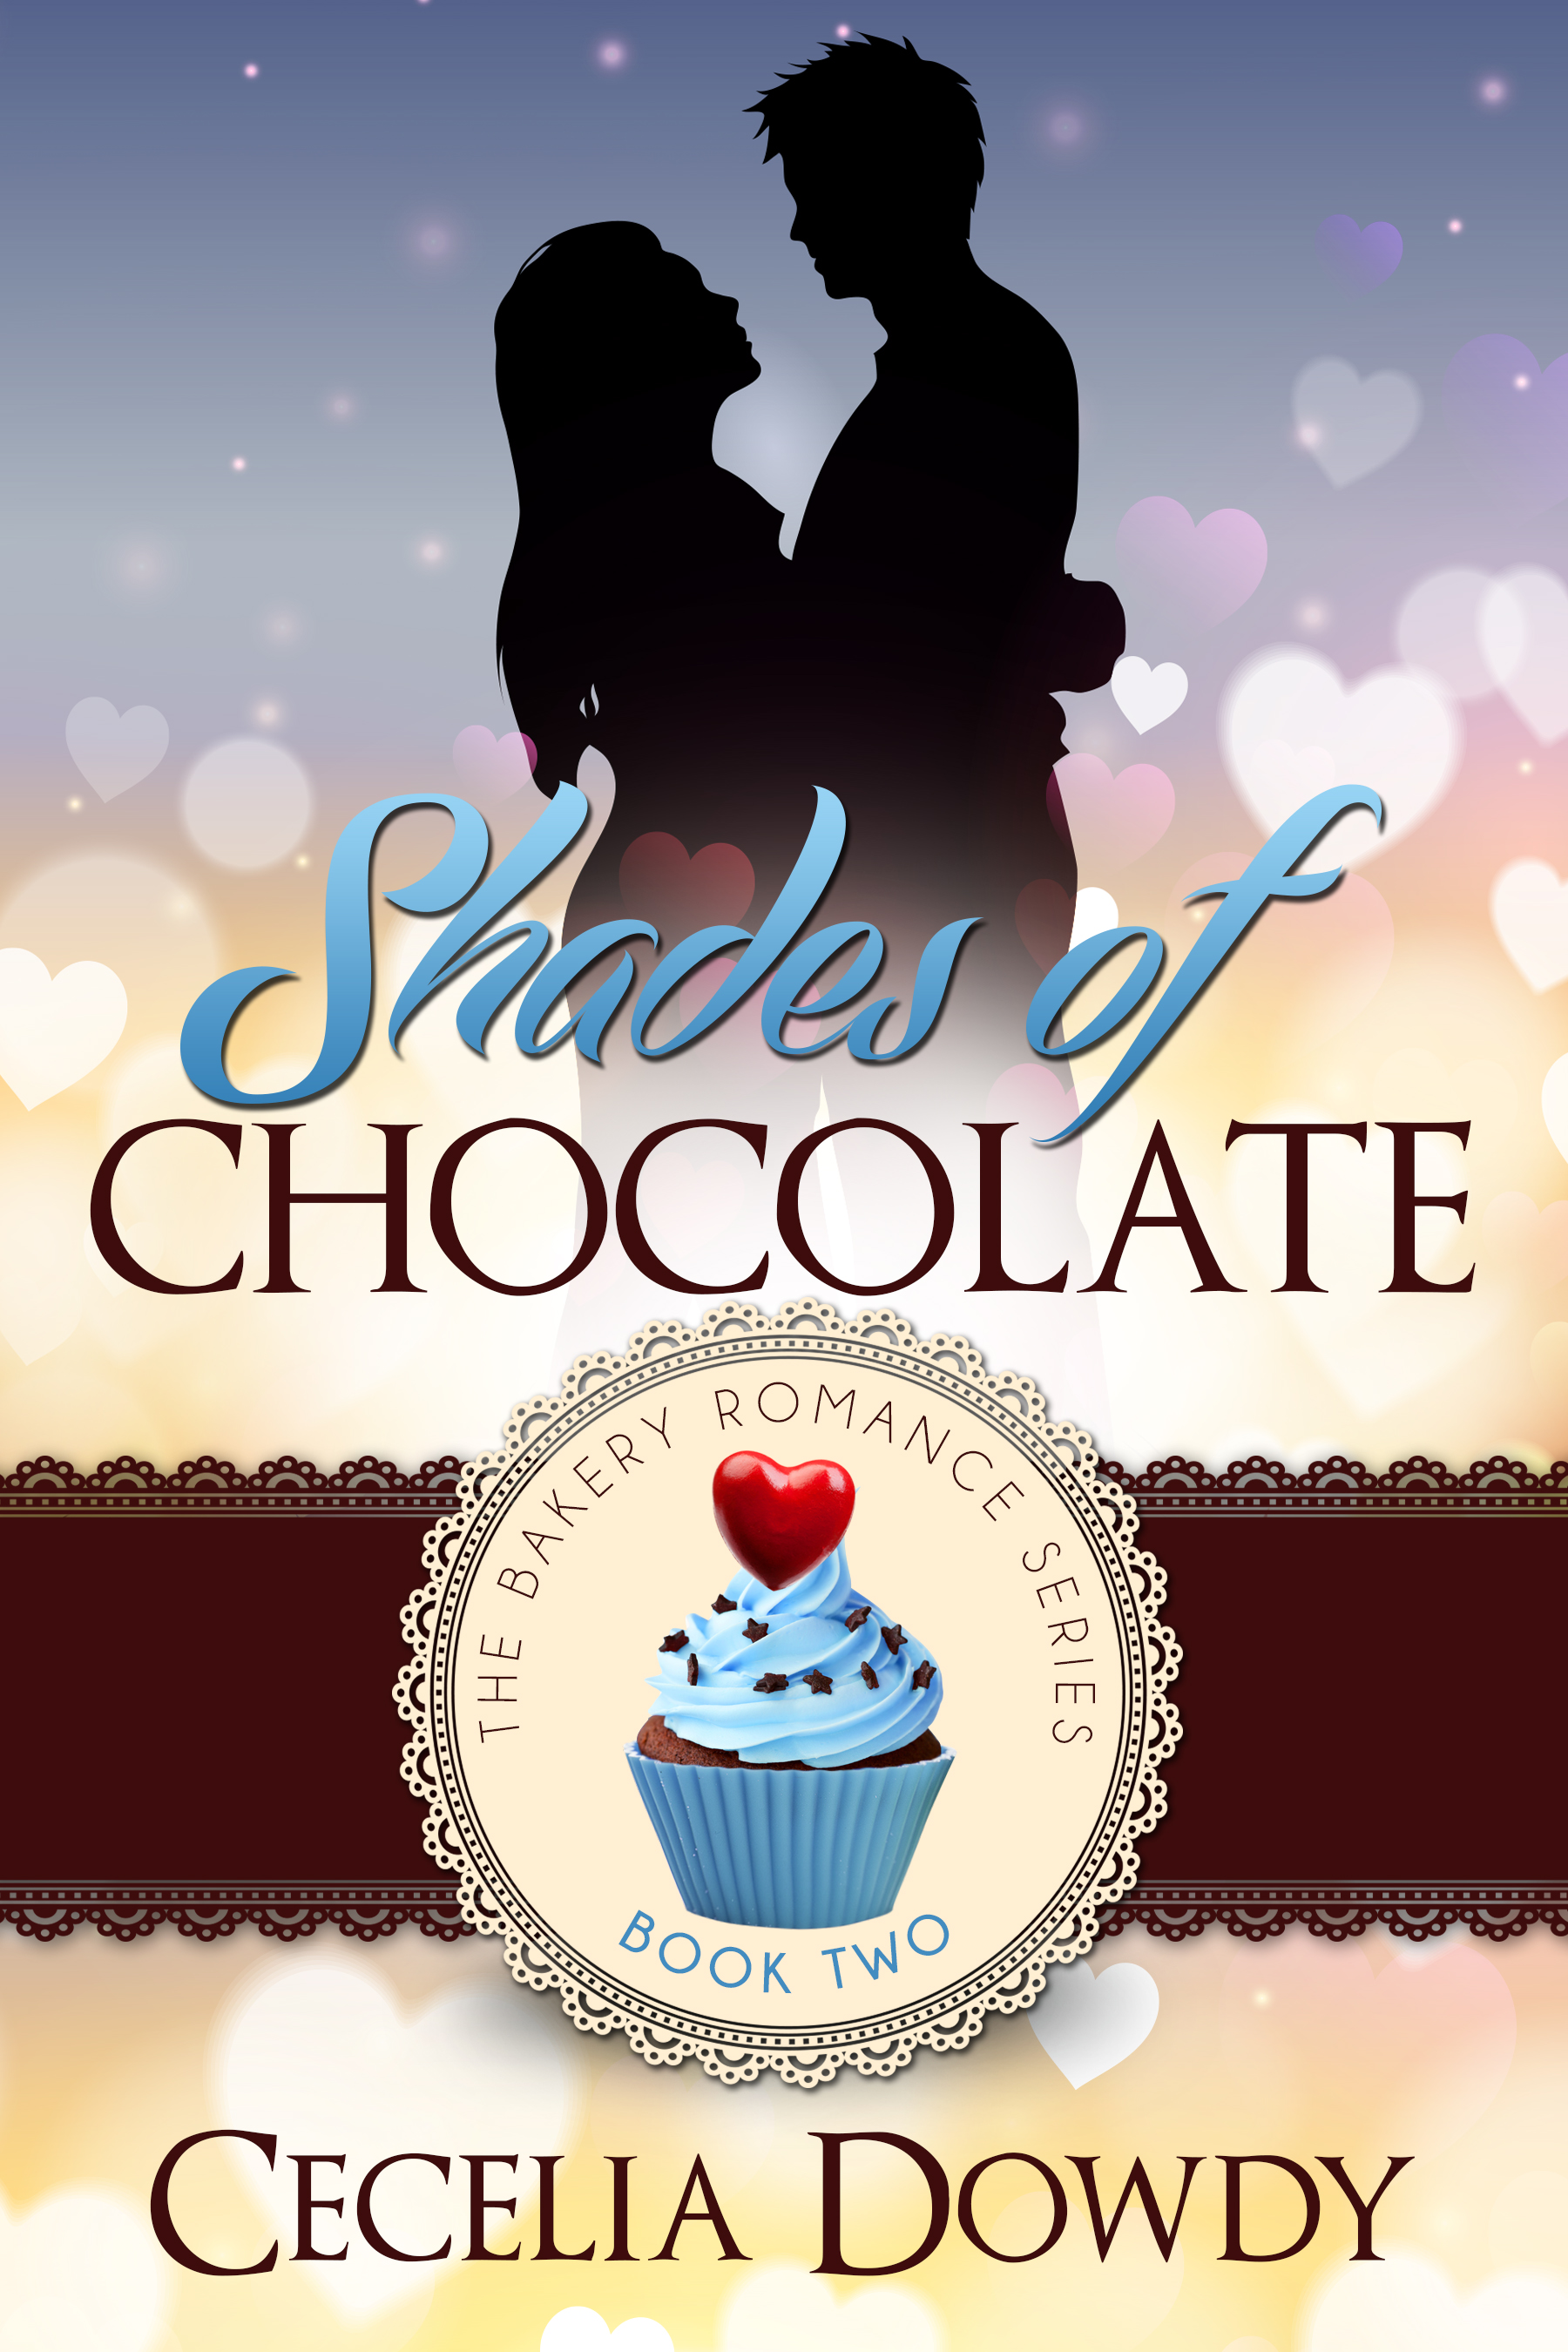 ShadesofChocolate_V1 (1) - final